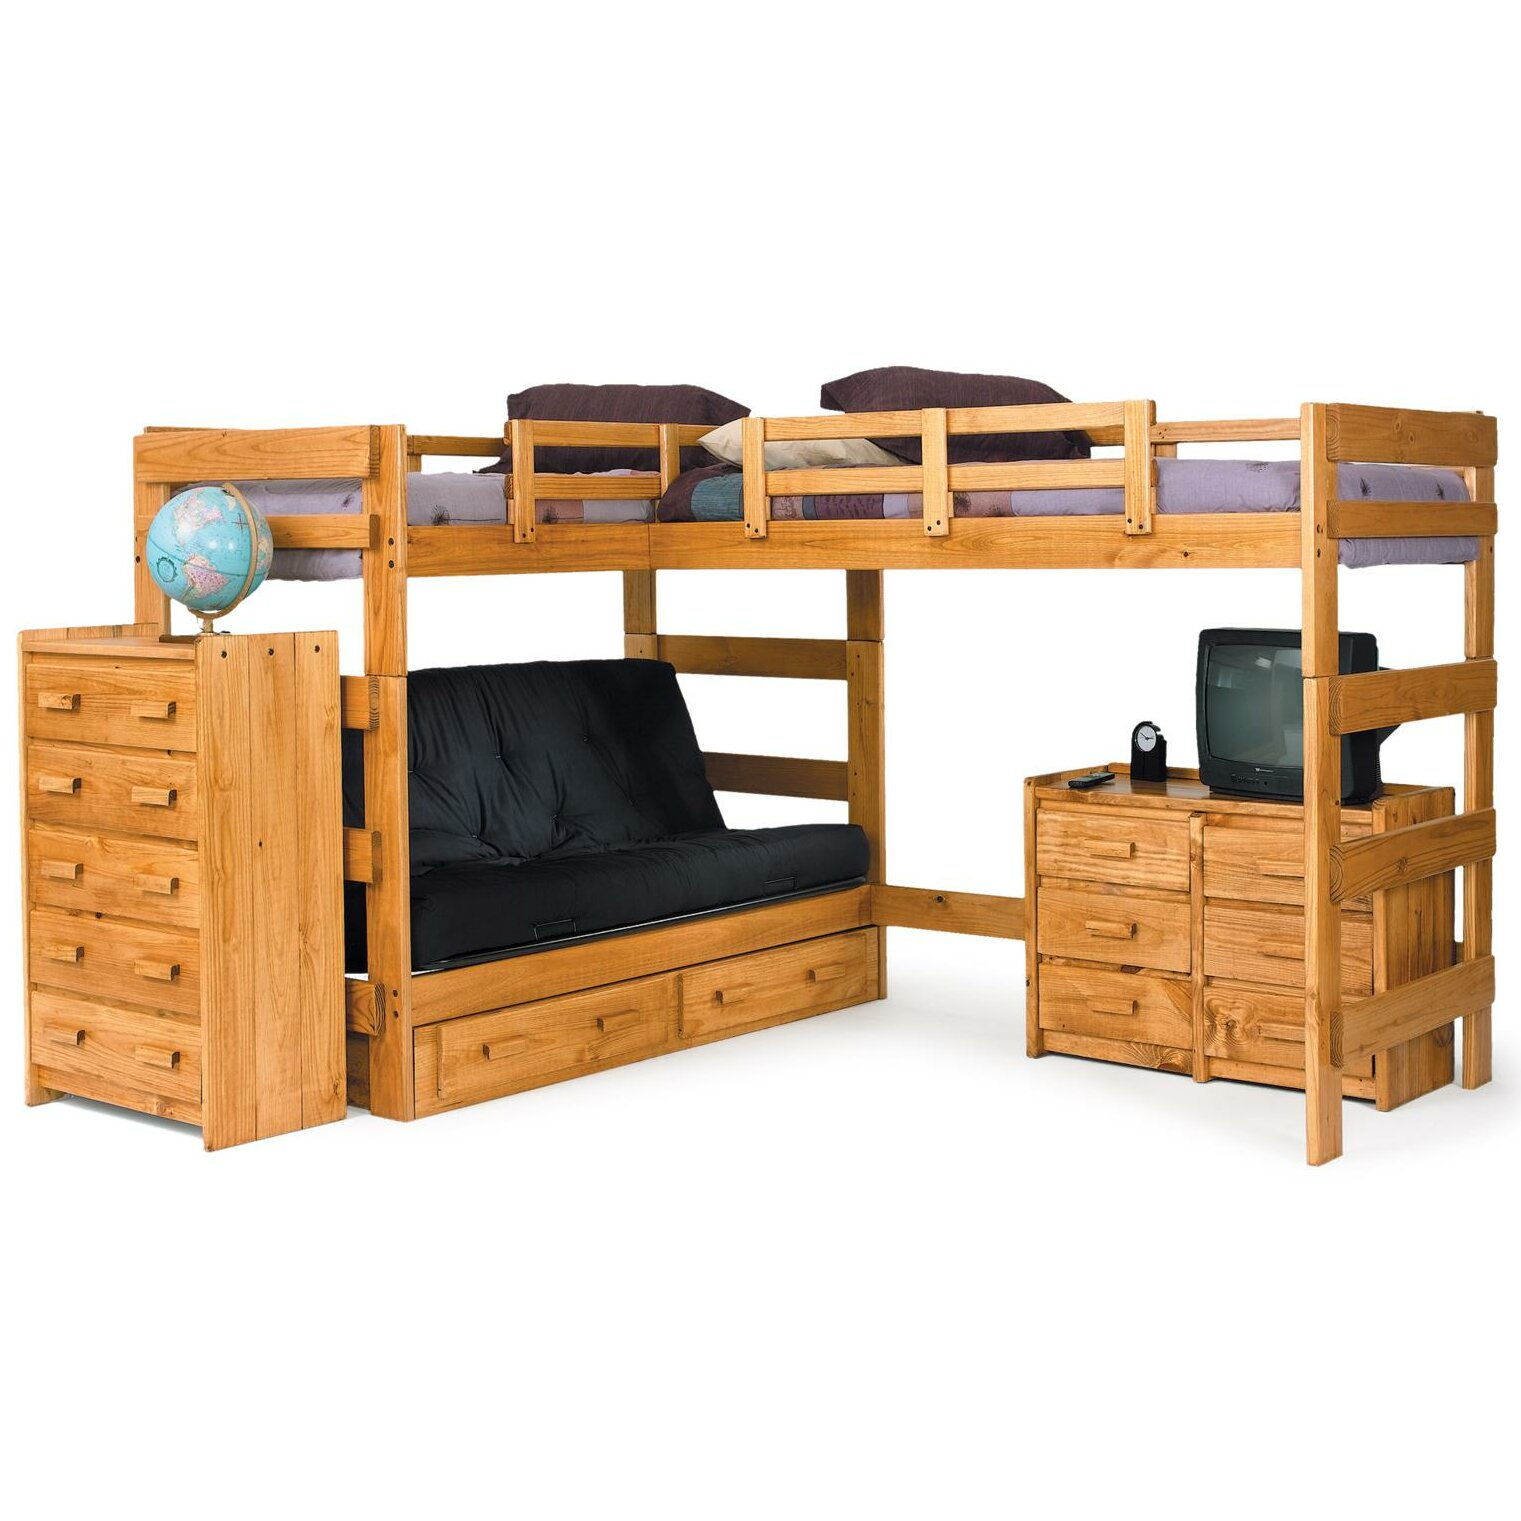 Of Girls Without Dress In Bedroom With Boys Kids Bedroom Sets Shop Sets For Boys And Girls Youll Love Wayfair